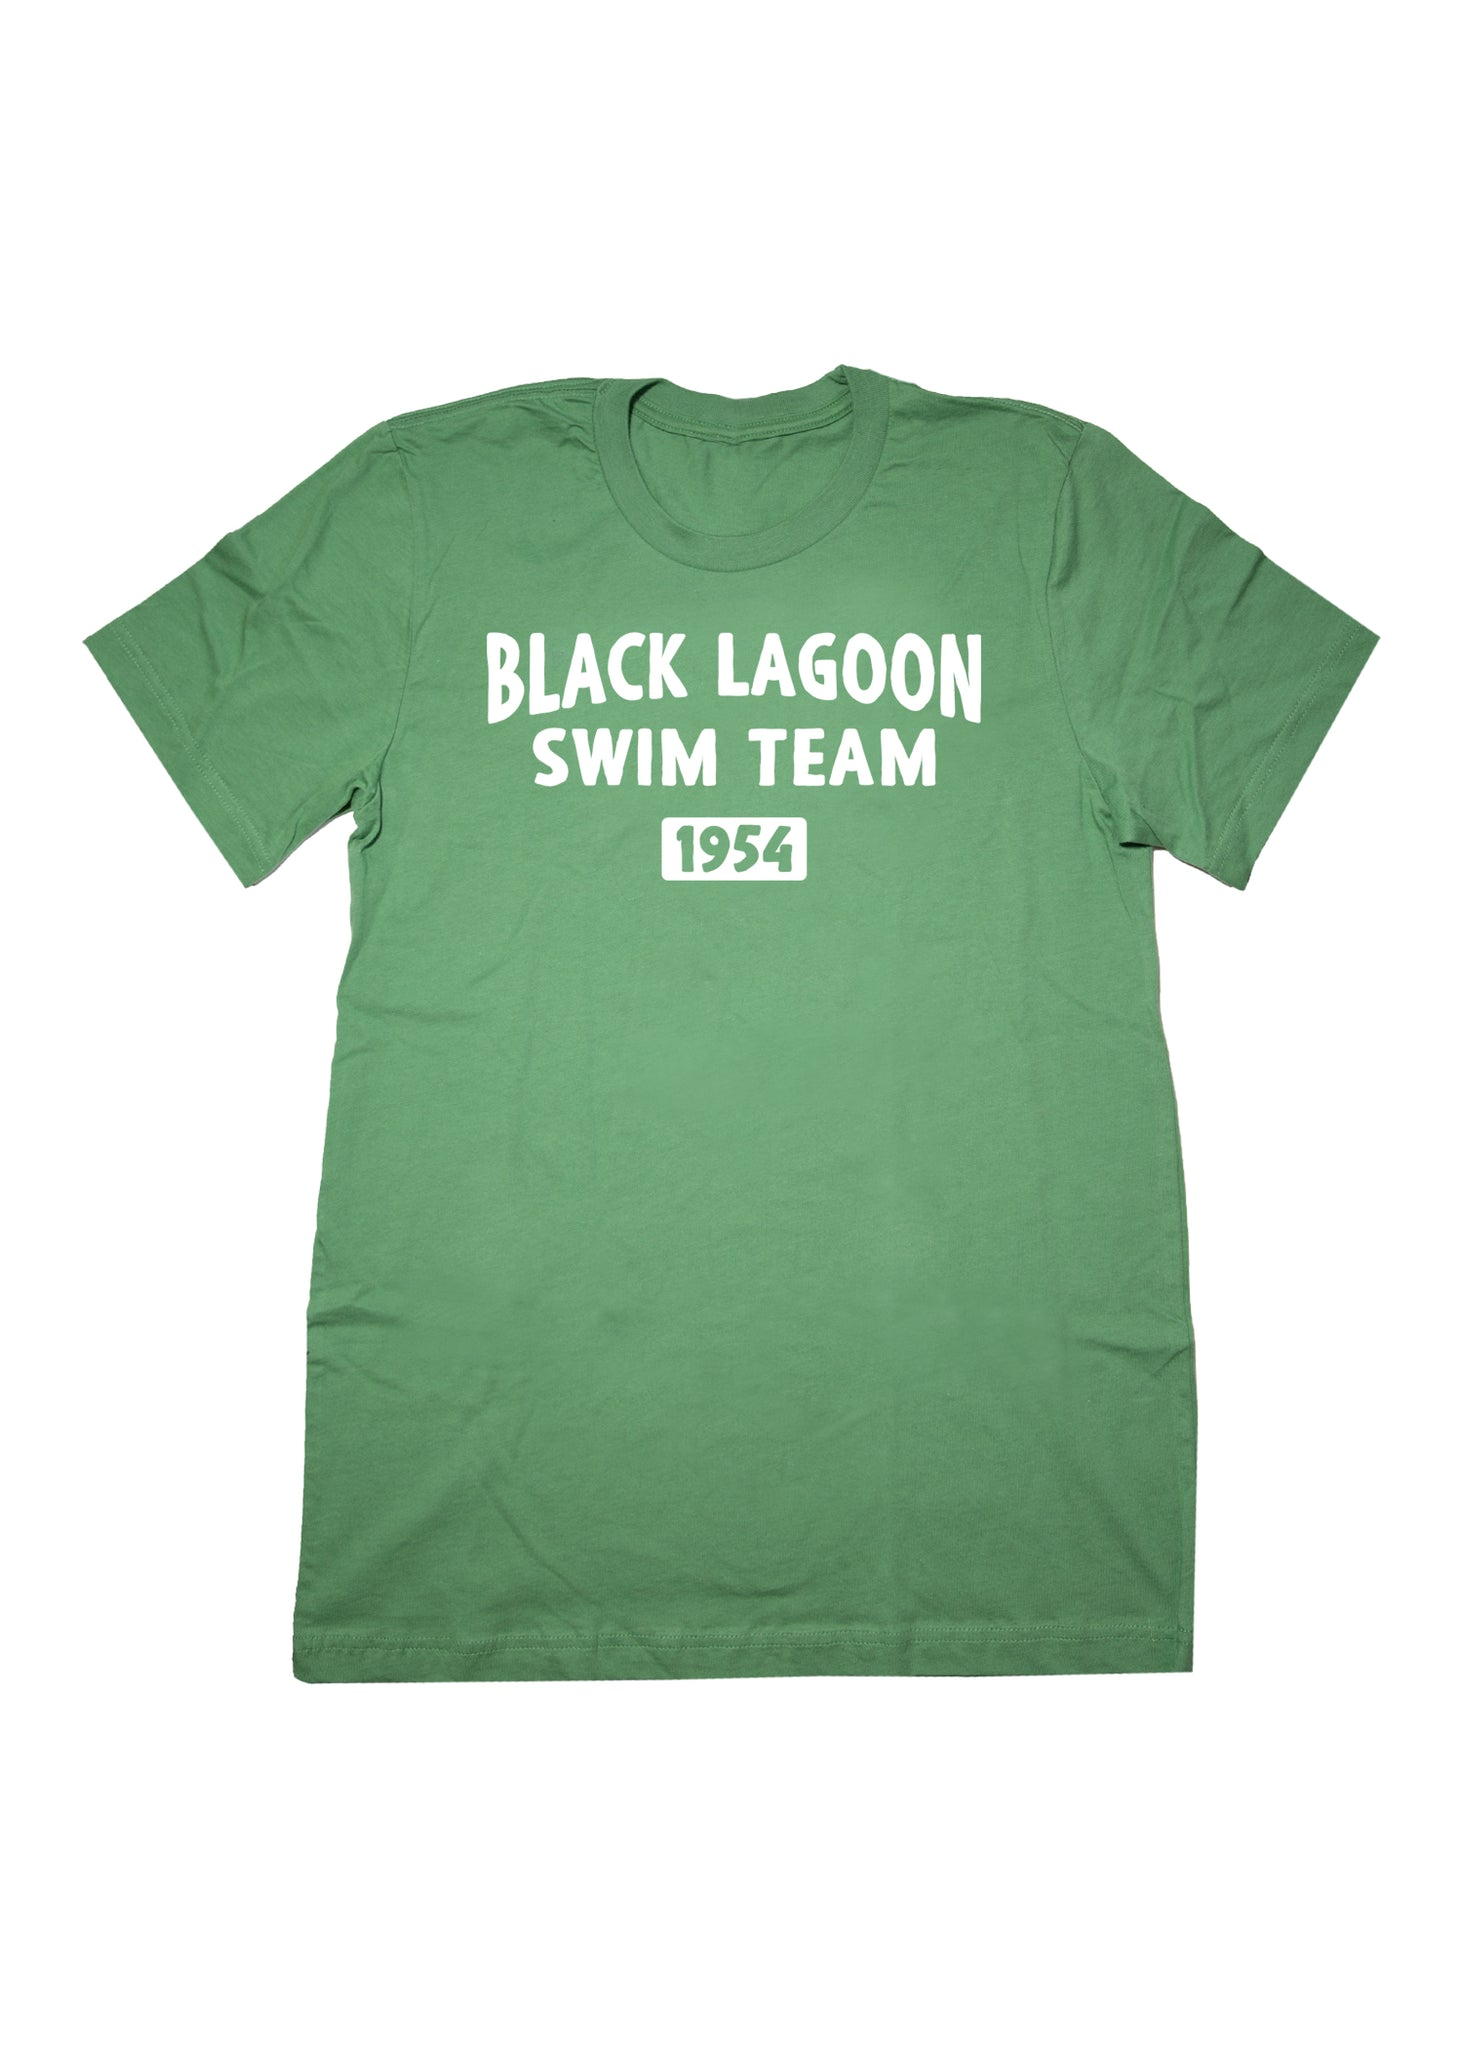 PRE-ORDER Black Lagoon Swim Team Unisex Adult T-Shirt in Green